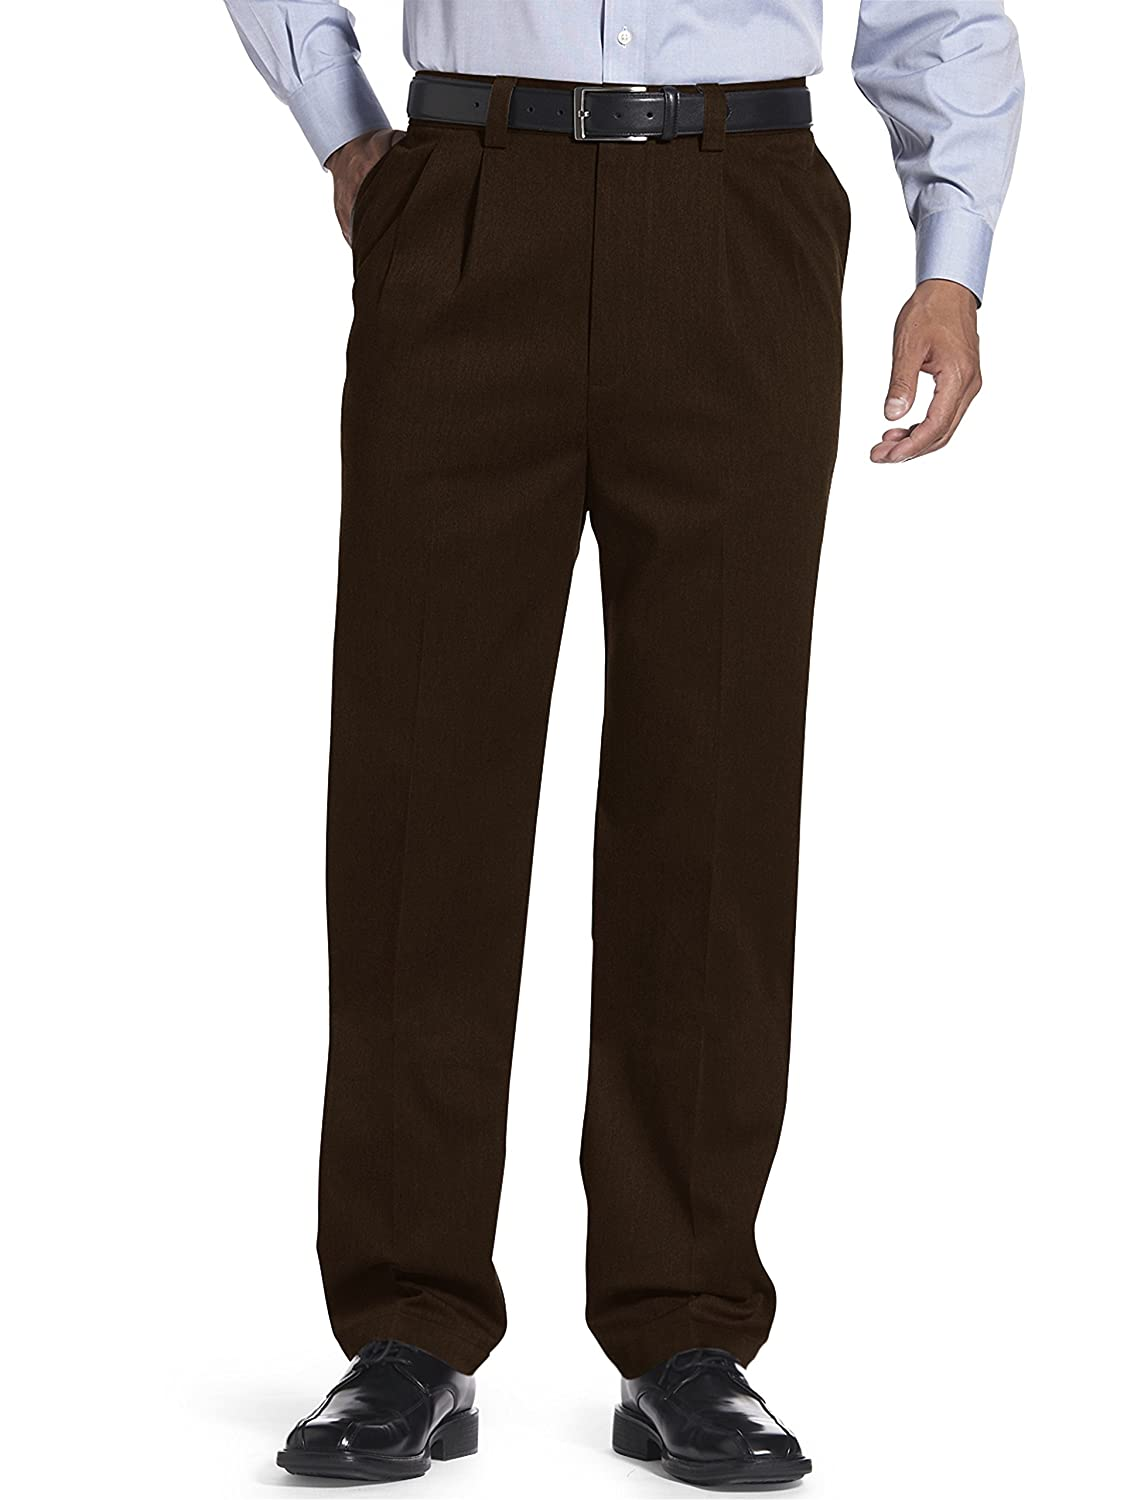 Oak Hill by DXL Big and Tall Dual Action Premium Twill Pleated Pants